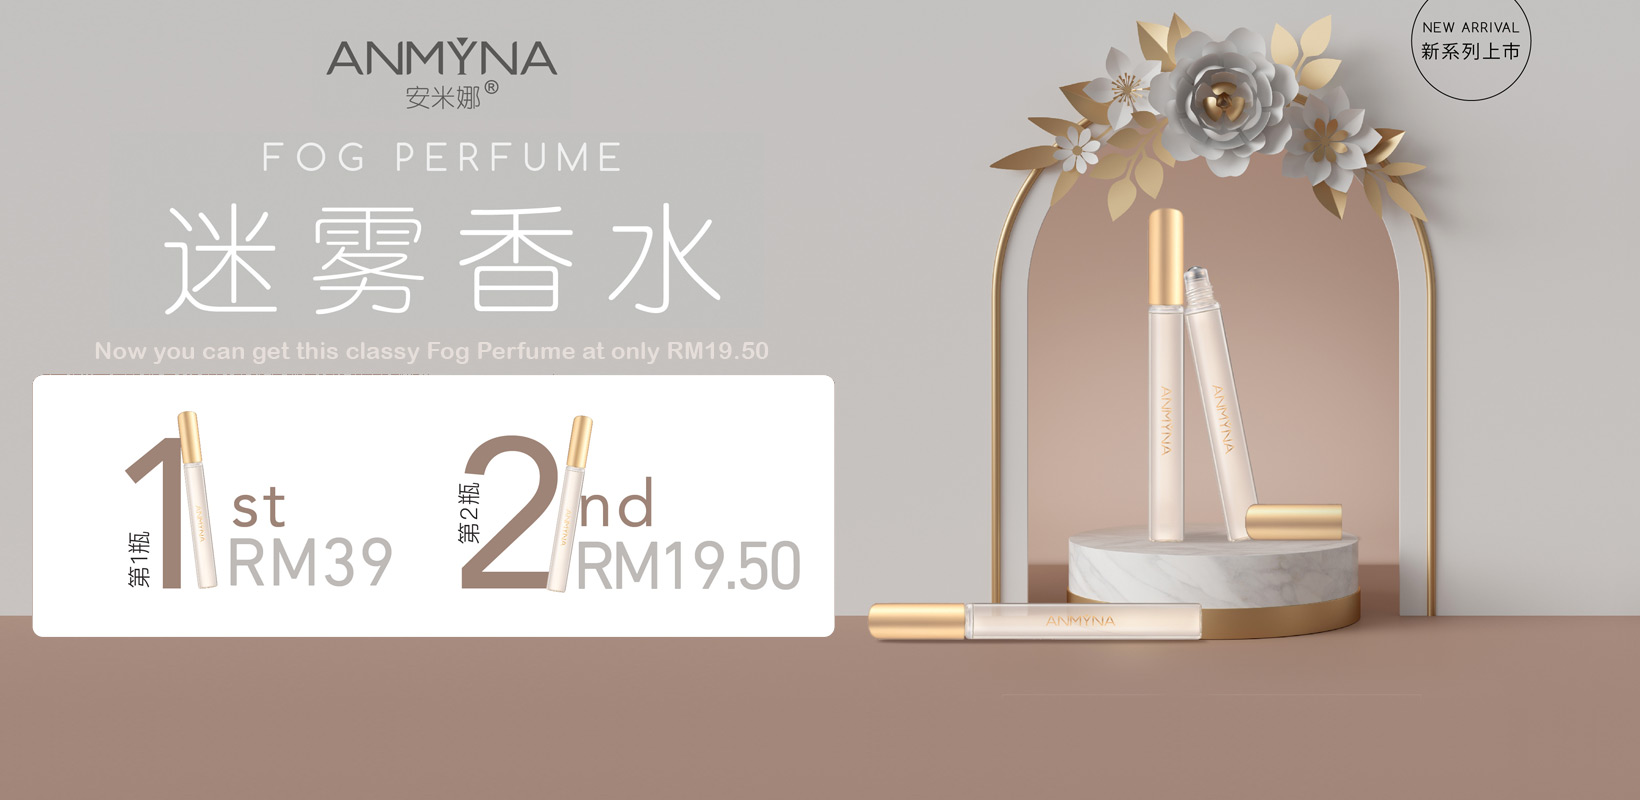 Fog Perfume New Arrival Promotion!